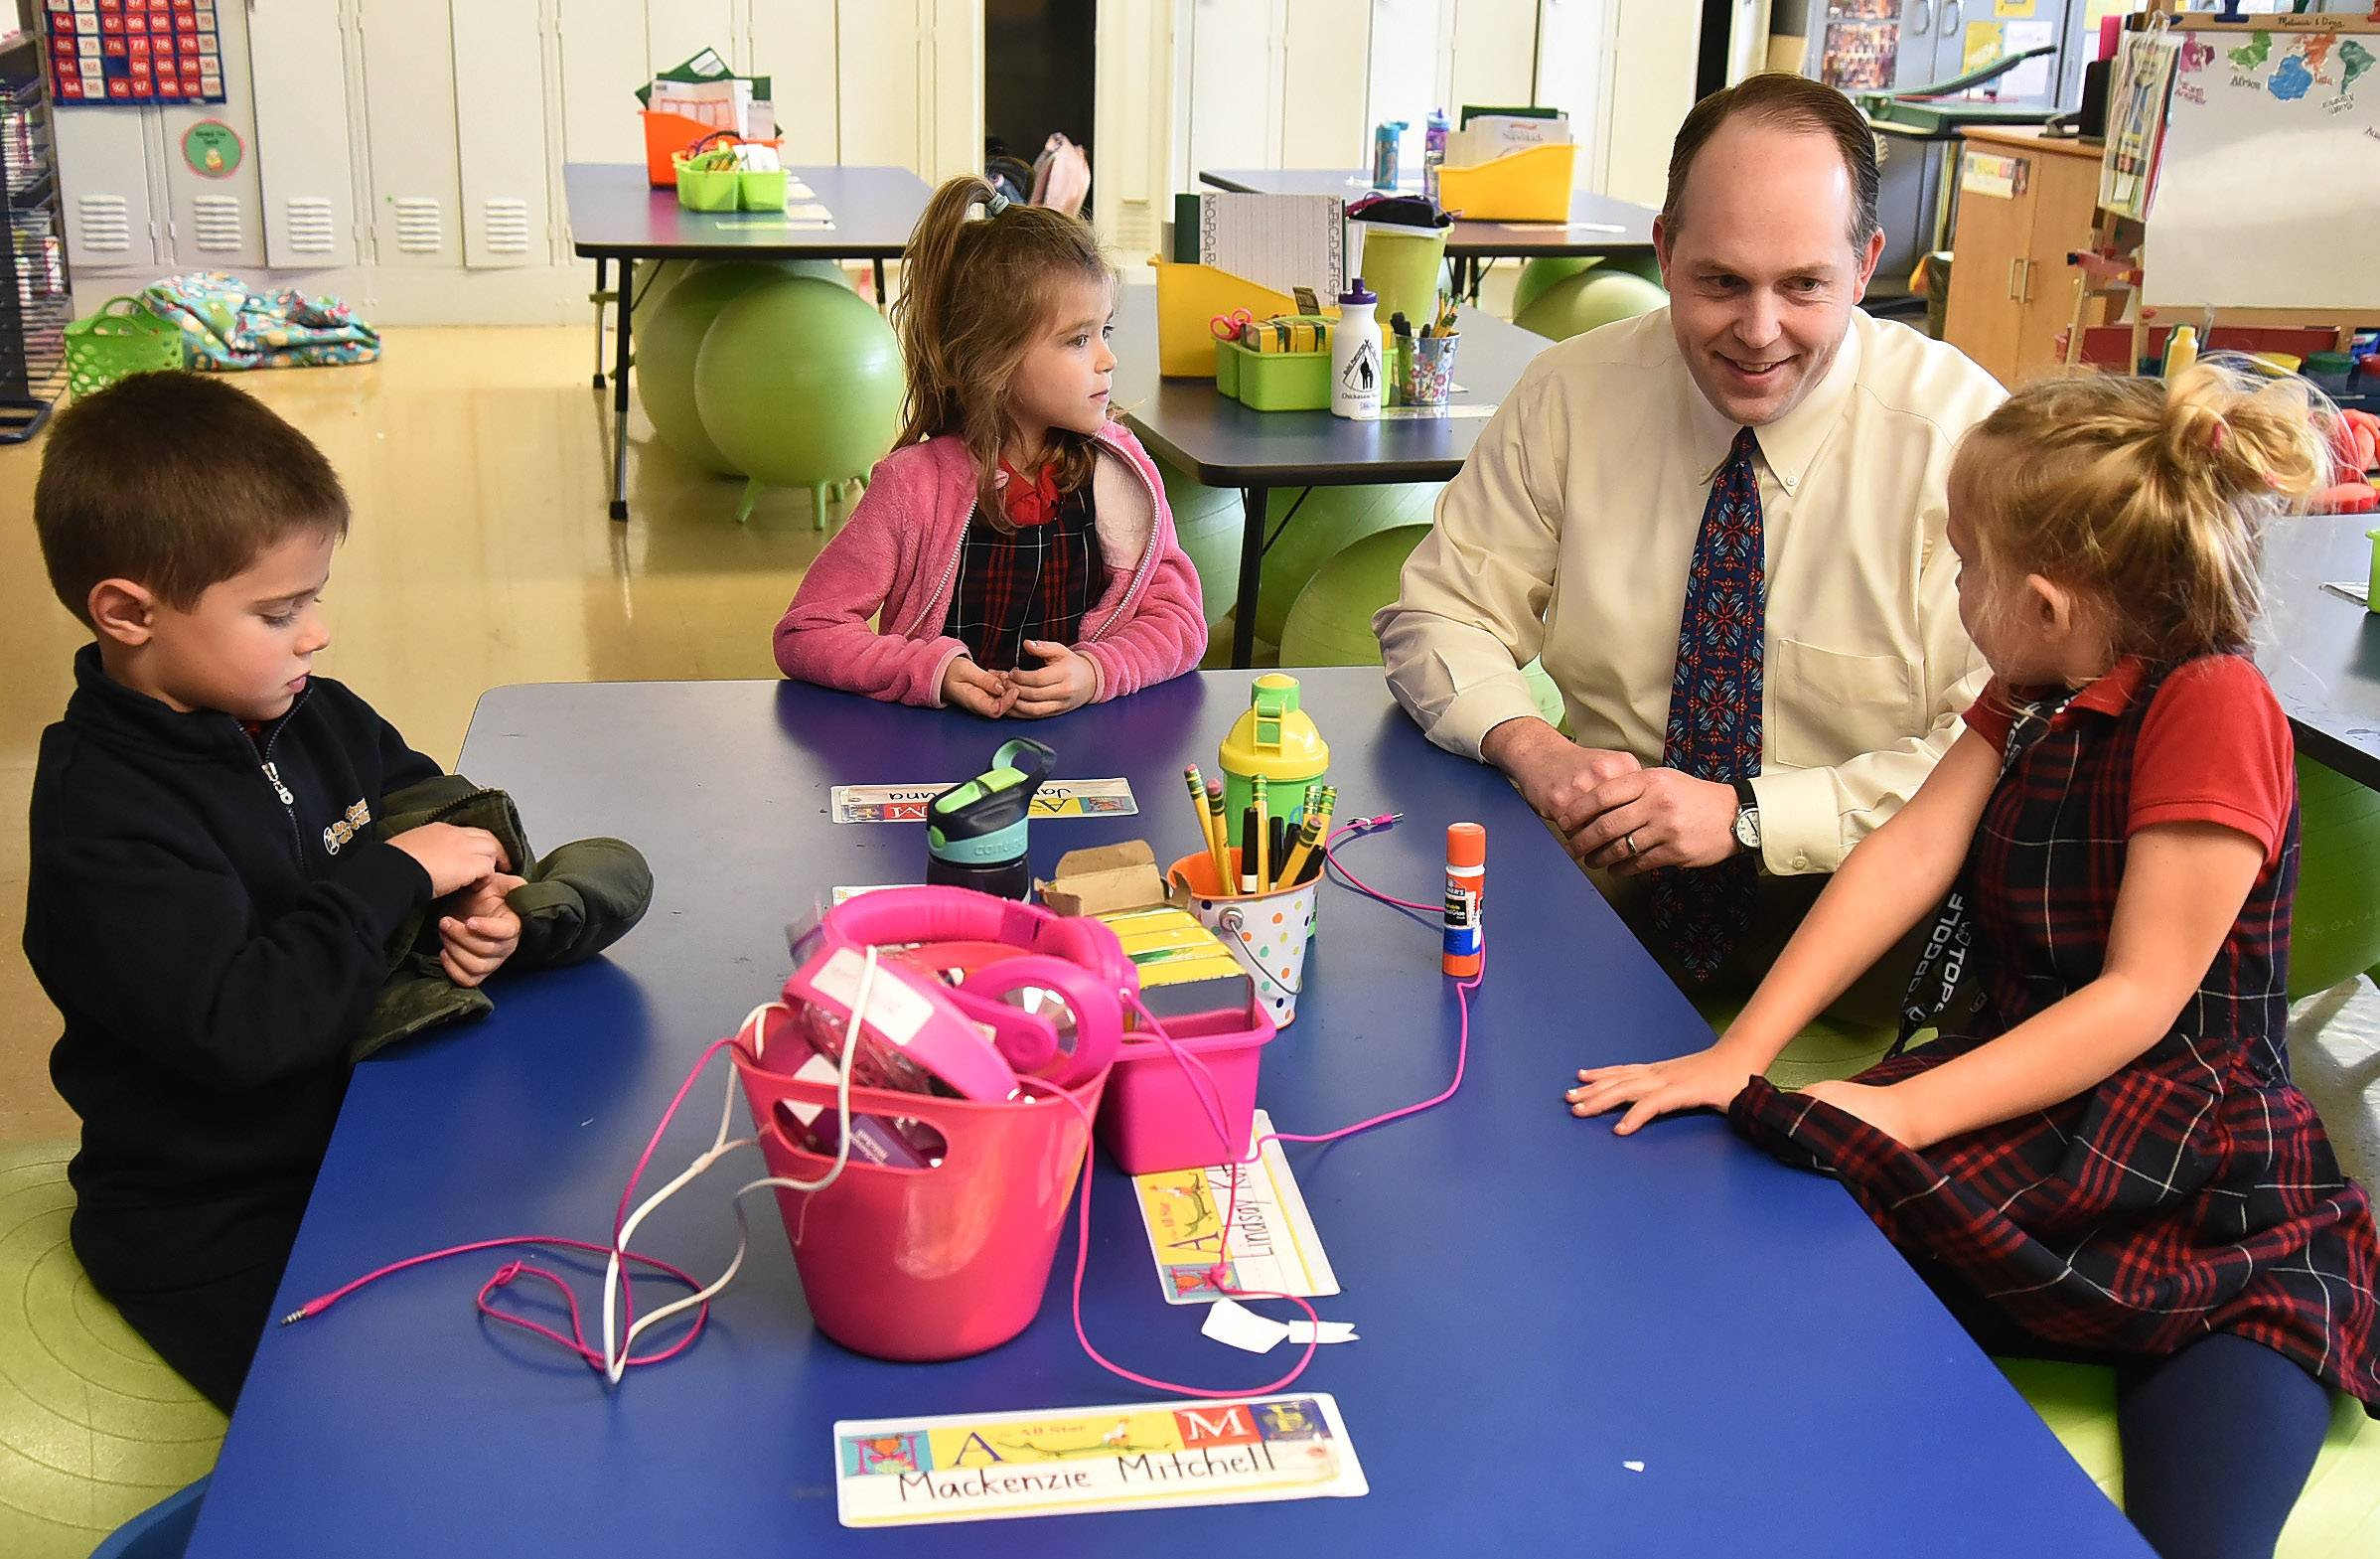 Archdiocese of Chicago Superintendent of Schools Jim Rigg visits with kindergartners, from left, Johnny Meyers, McKenzie Mitchell and Amelia Rembisz at St. Thomas of Villanova school in Palatine Thursday.